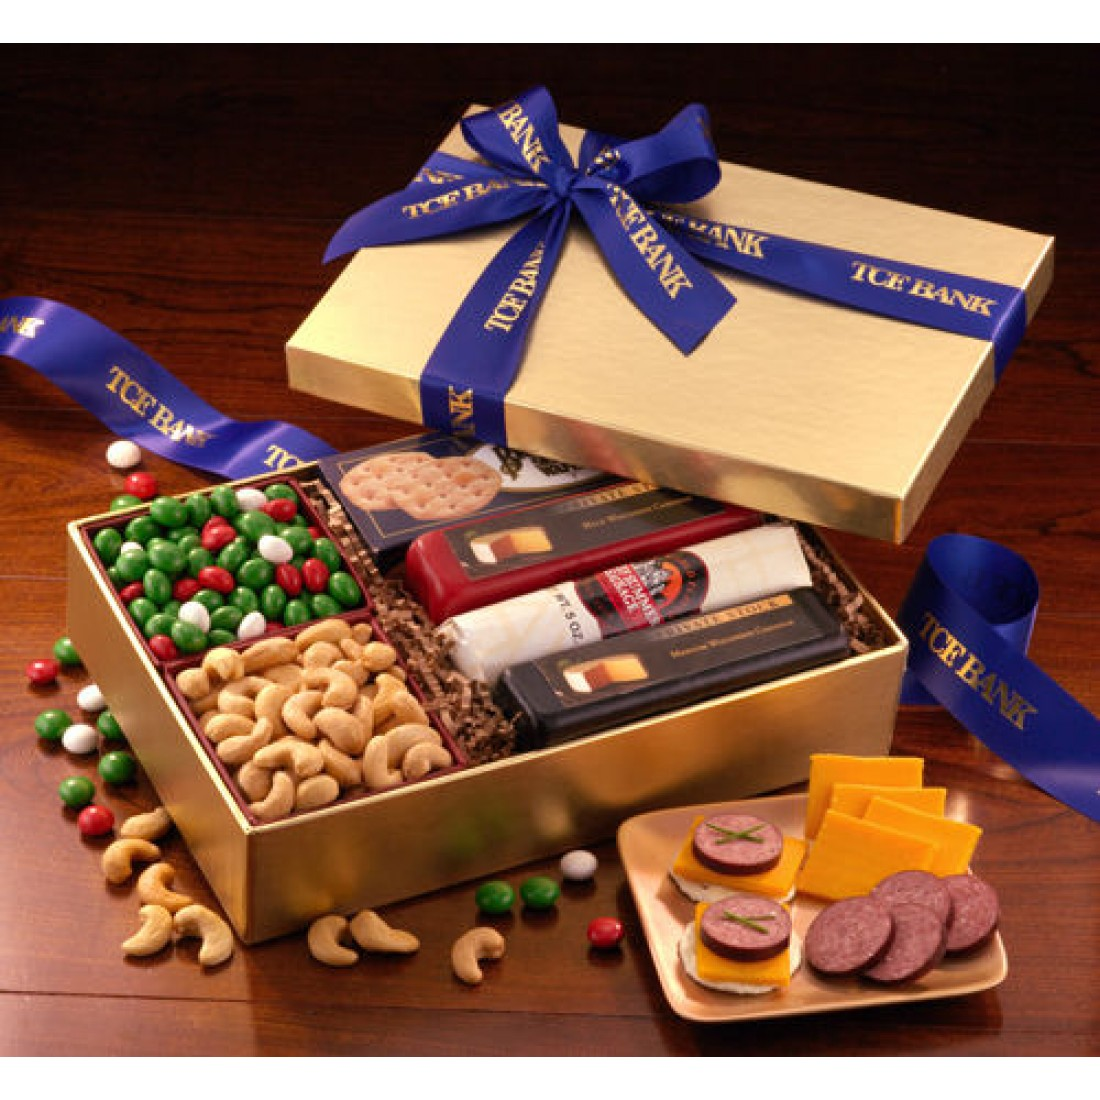 Shelf-Stable Smorgasbord  (CR206) - Cheese & Sausage  - Promotional Food Gifts